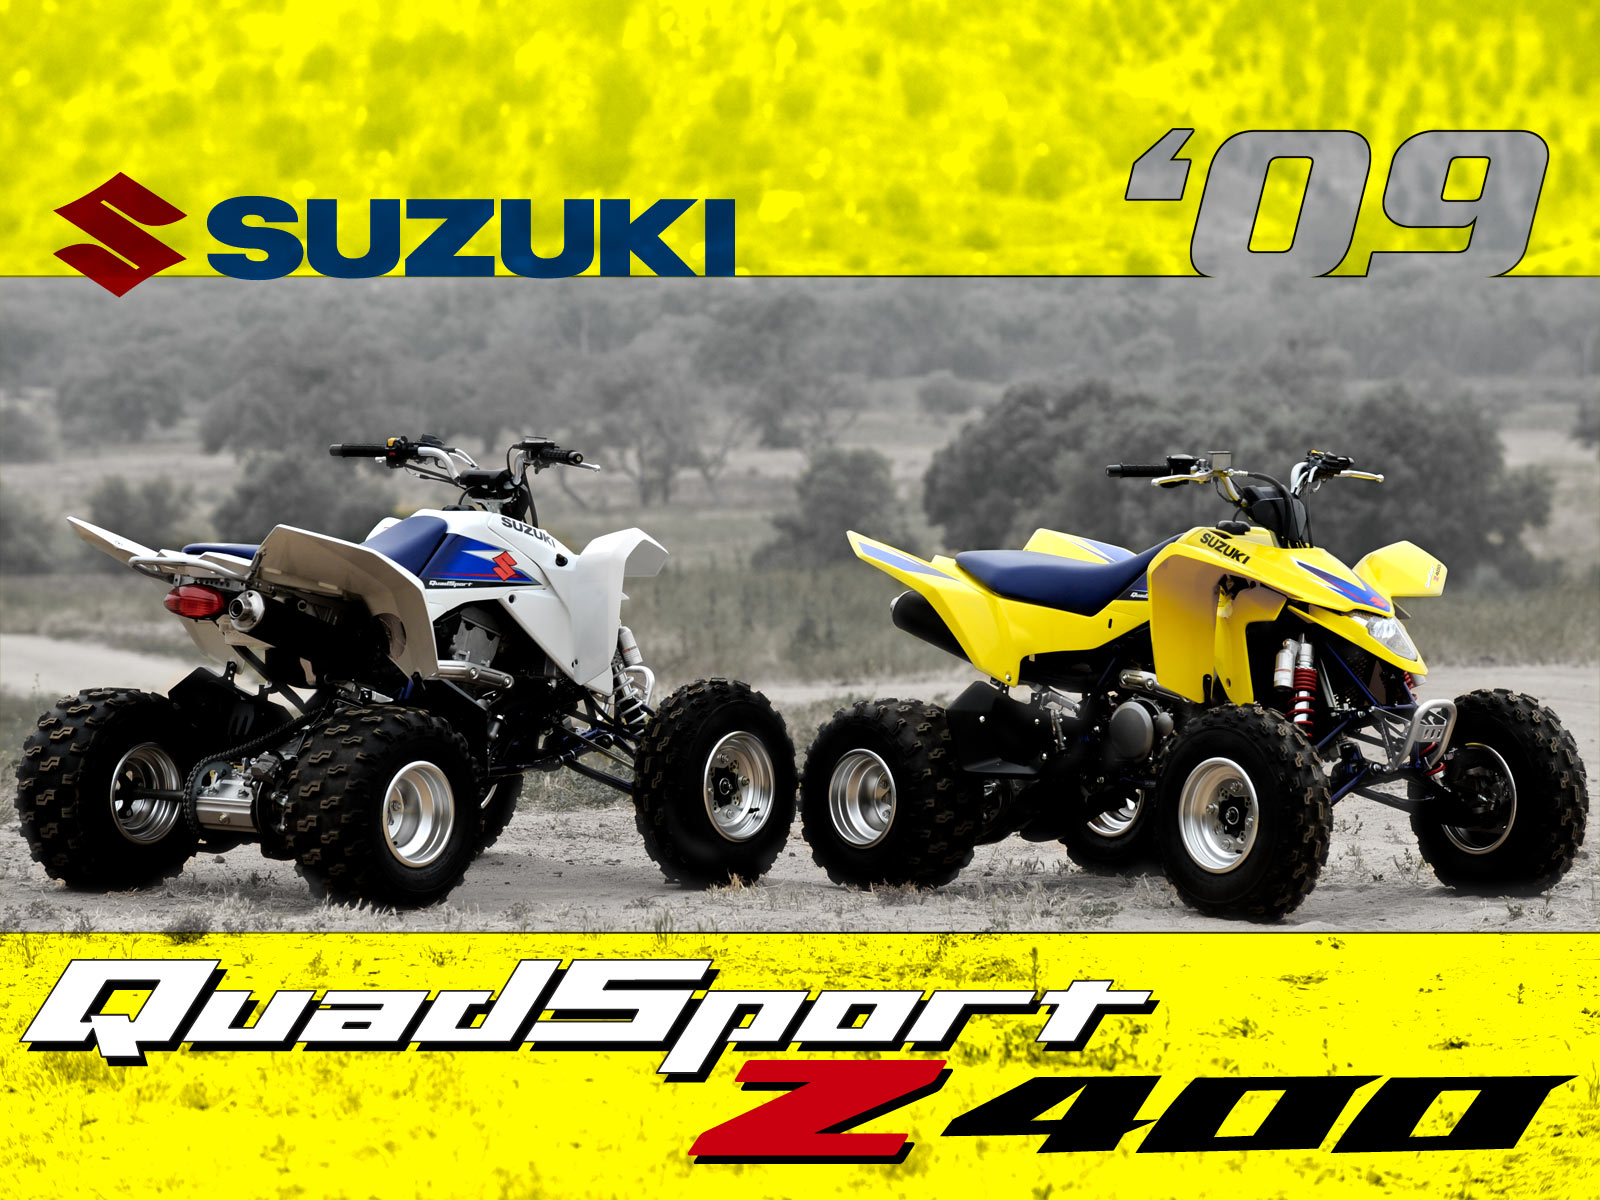 Suzuki quadsport photo - 2